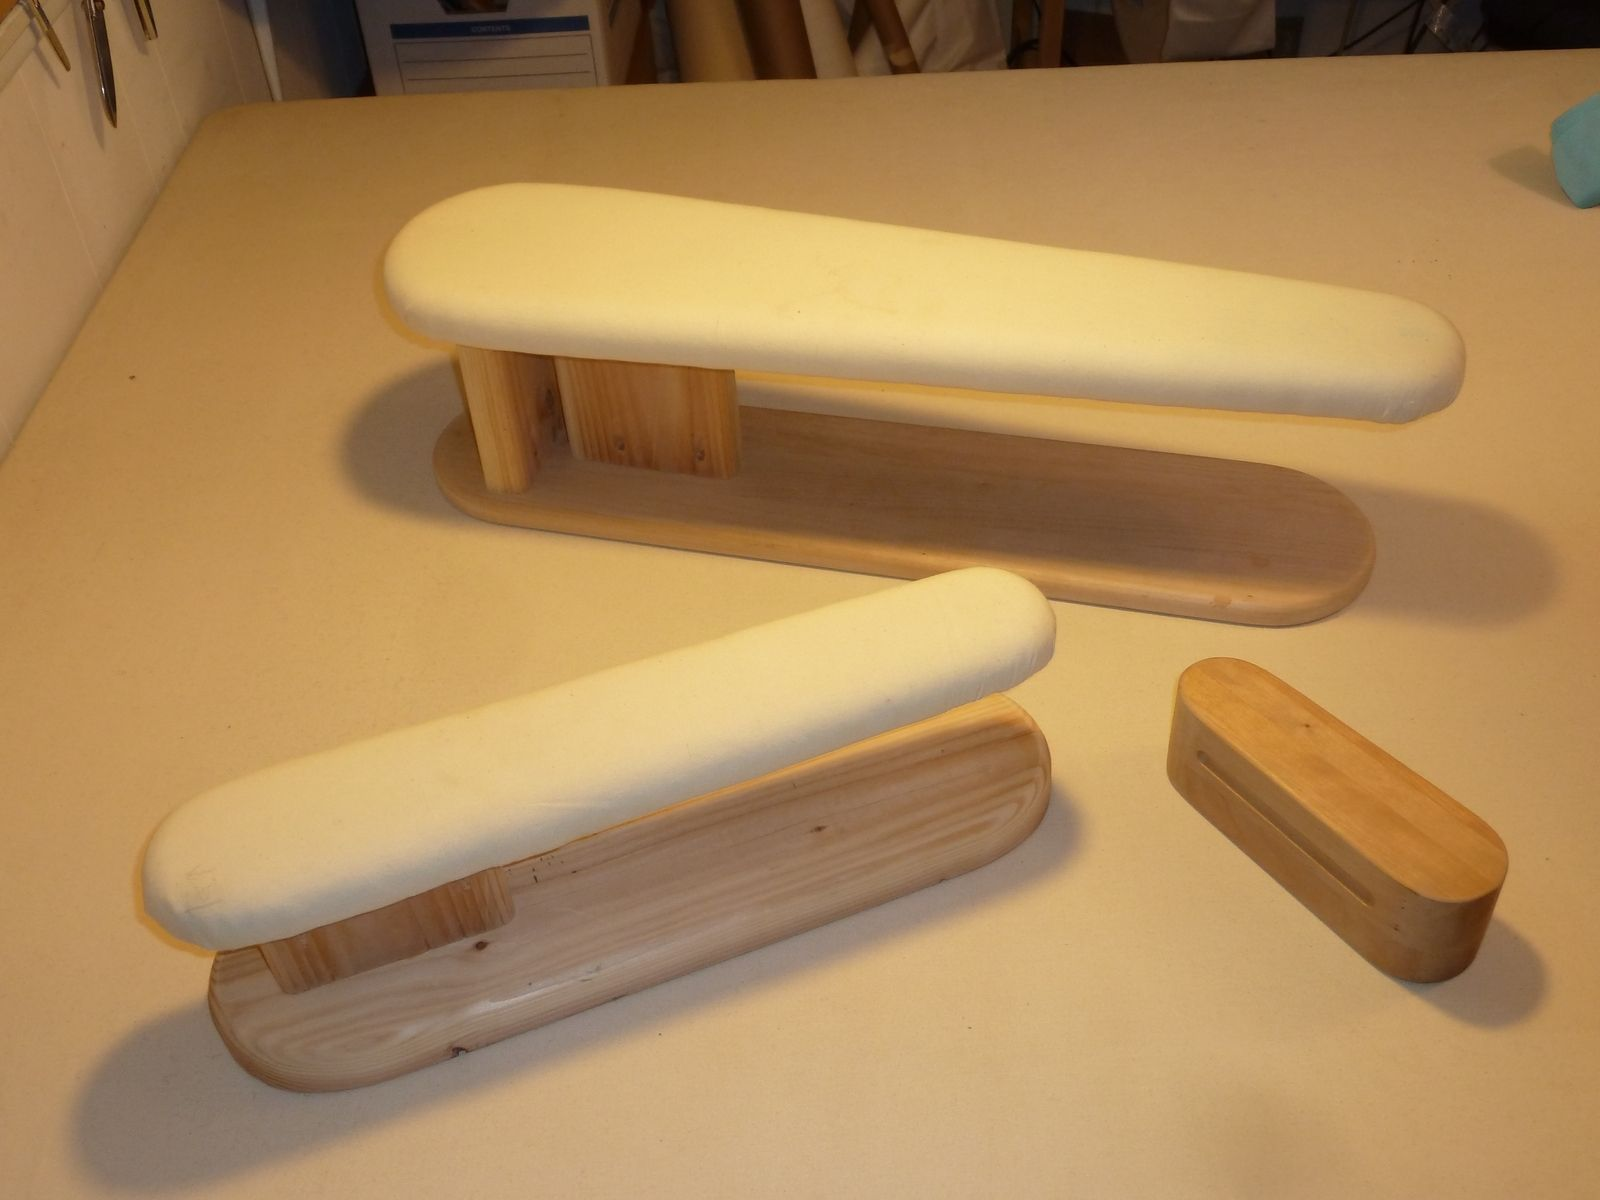 Custom Tailors Pressing Board V 2.0 by Thomas Brothers Workshop ...